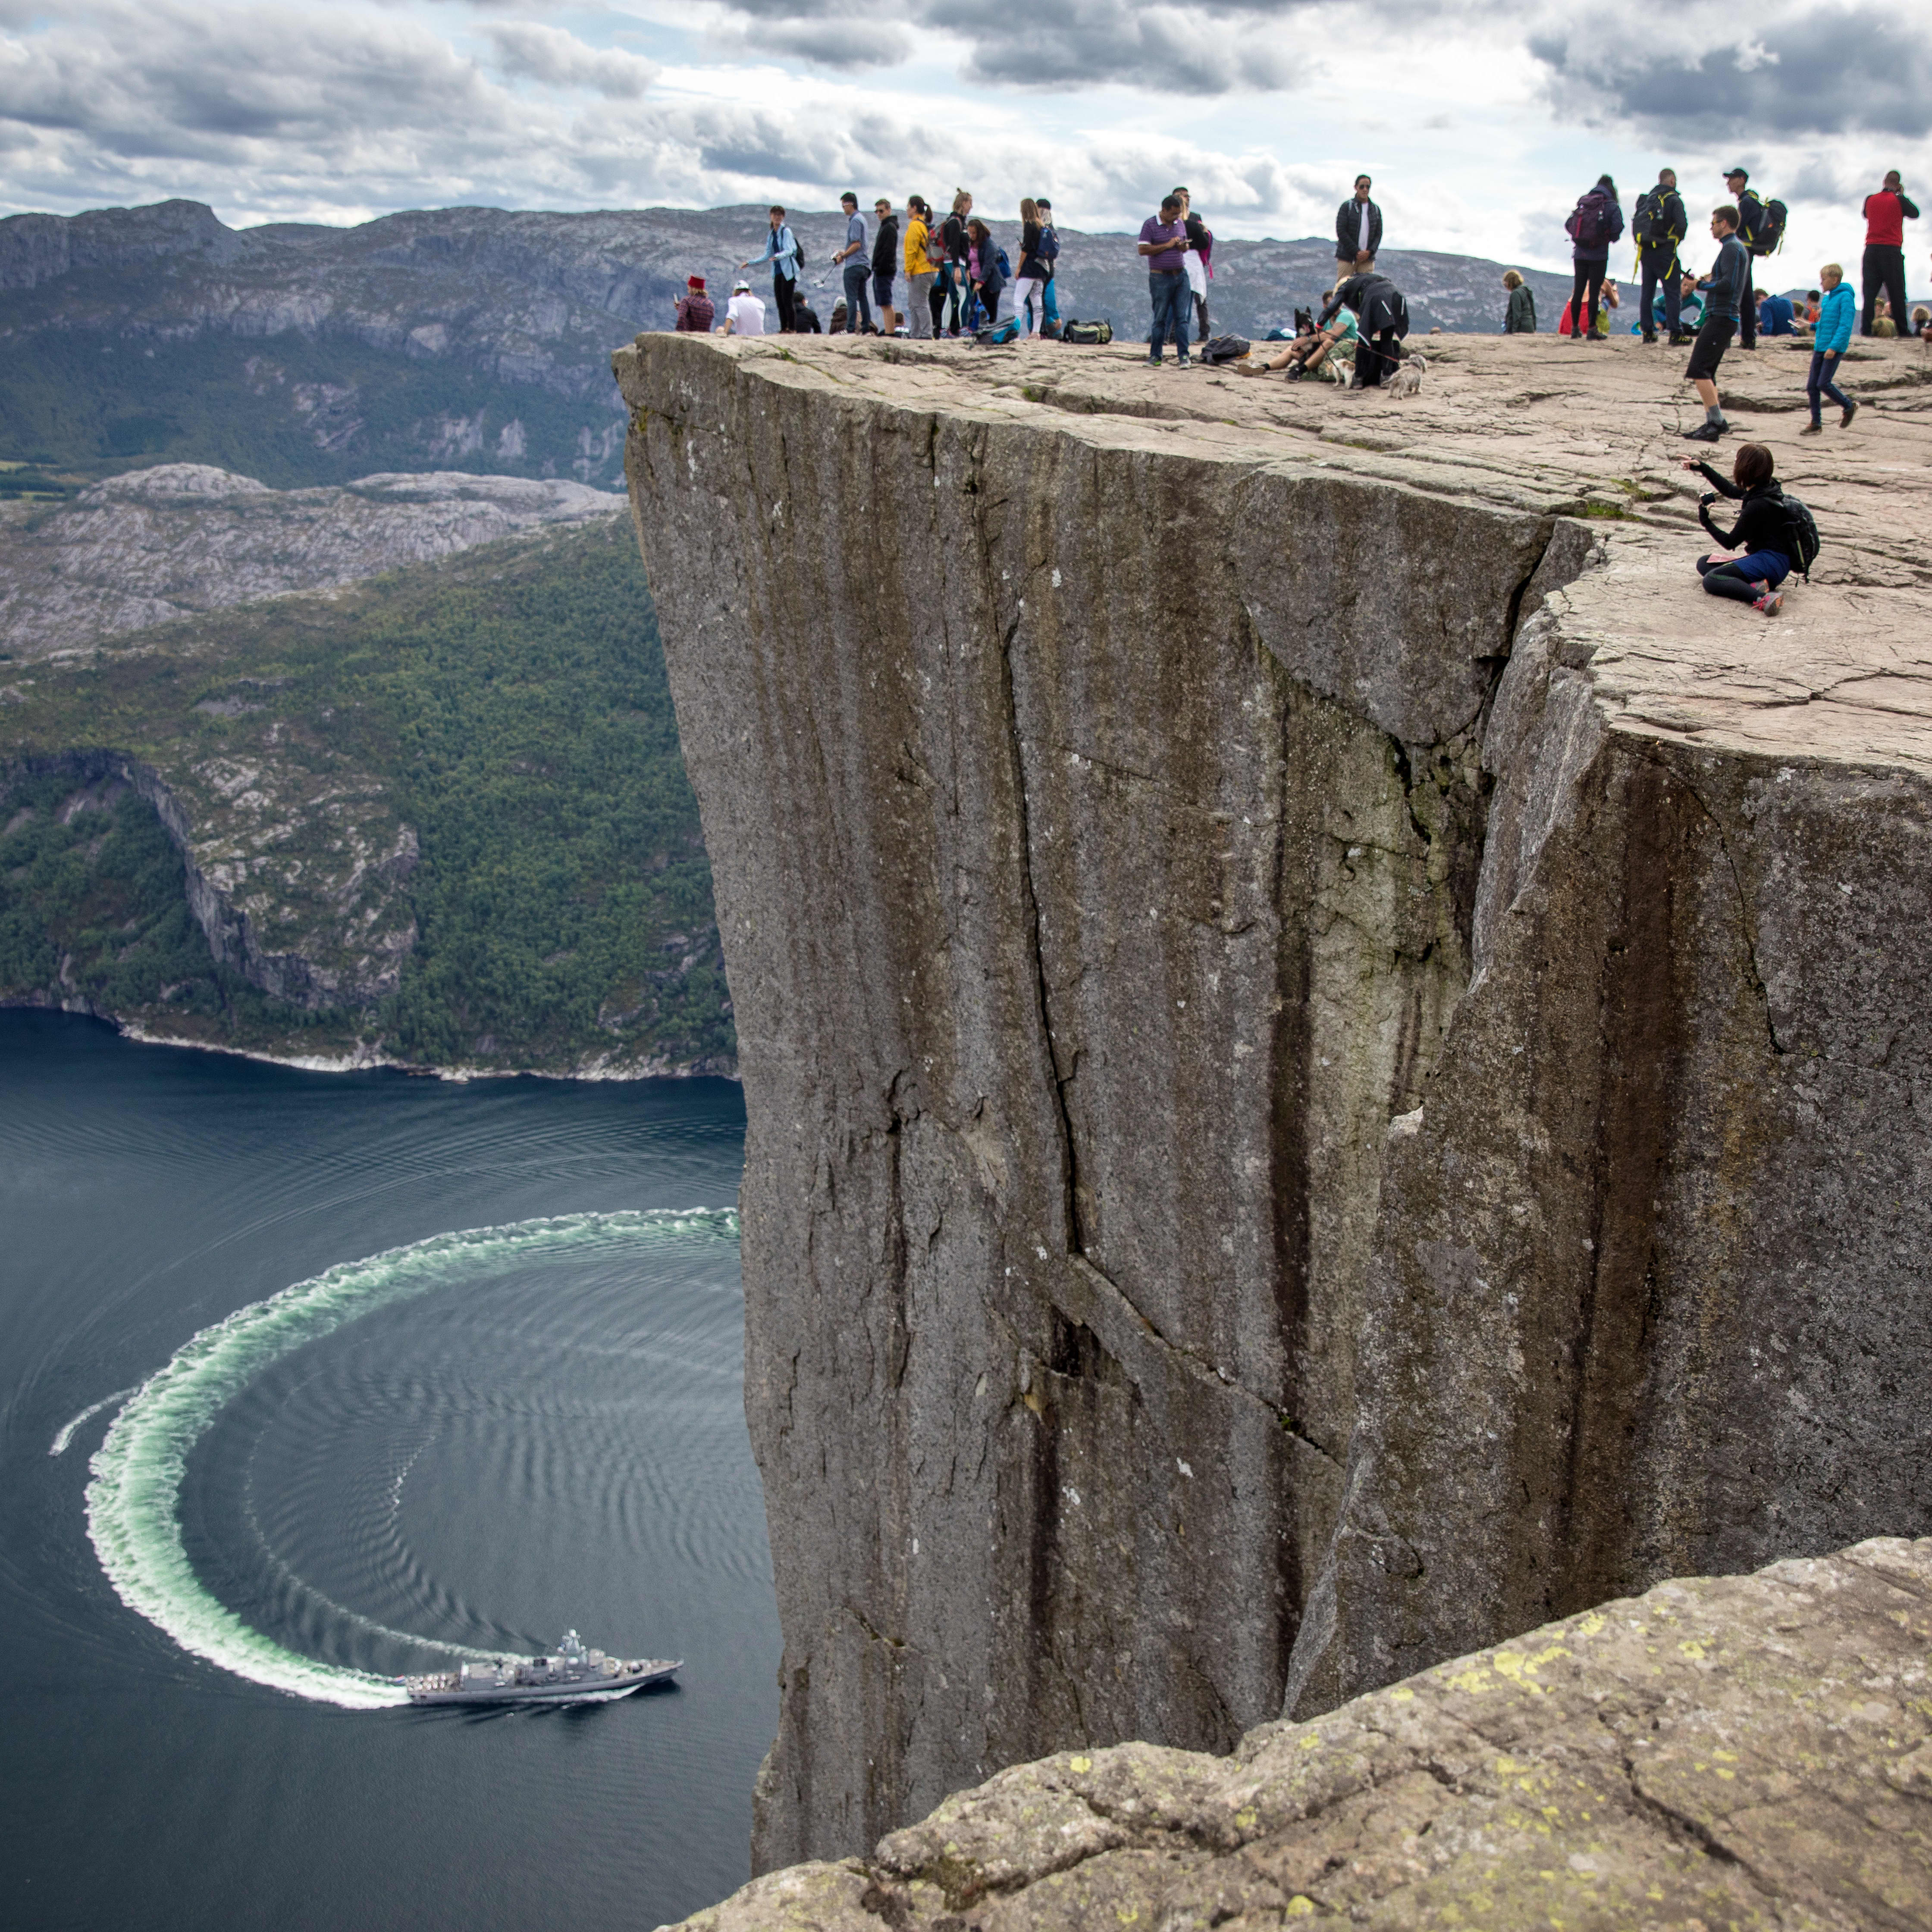 A view of Preikestolen from the side. You see the rock formation towering over the Lysefjord. In the fjord a boat is making a circular turn. On top of the rock many people are busy taking pictures and looking at the view.